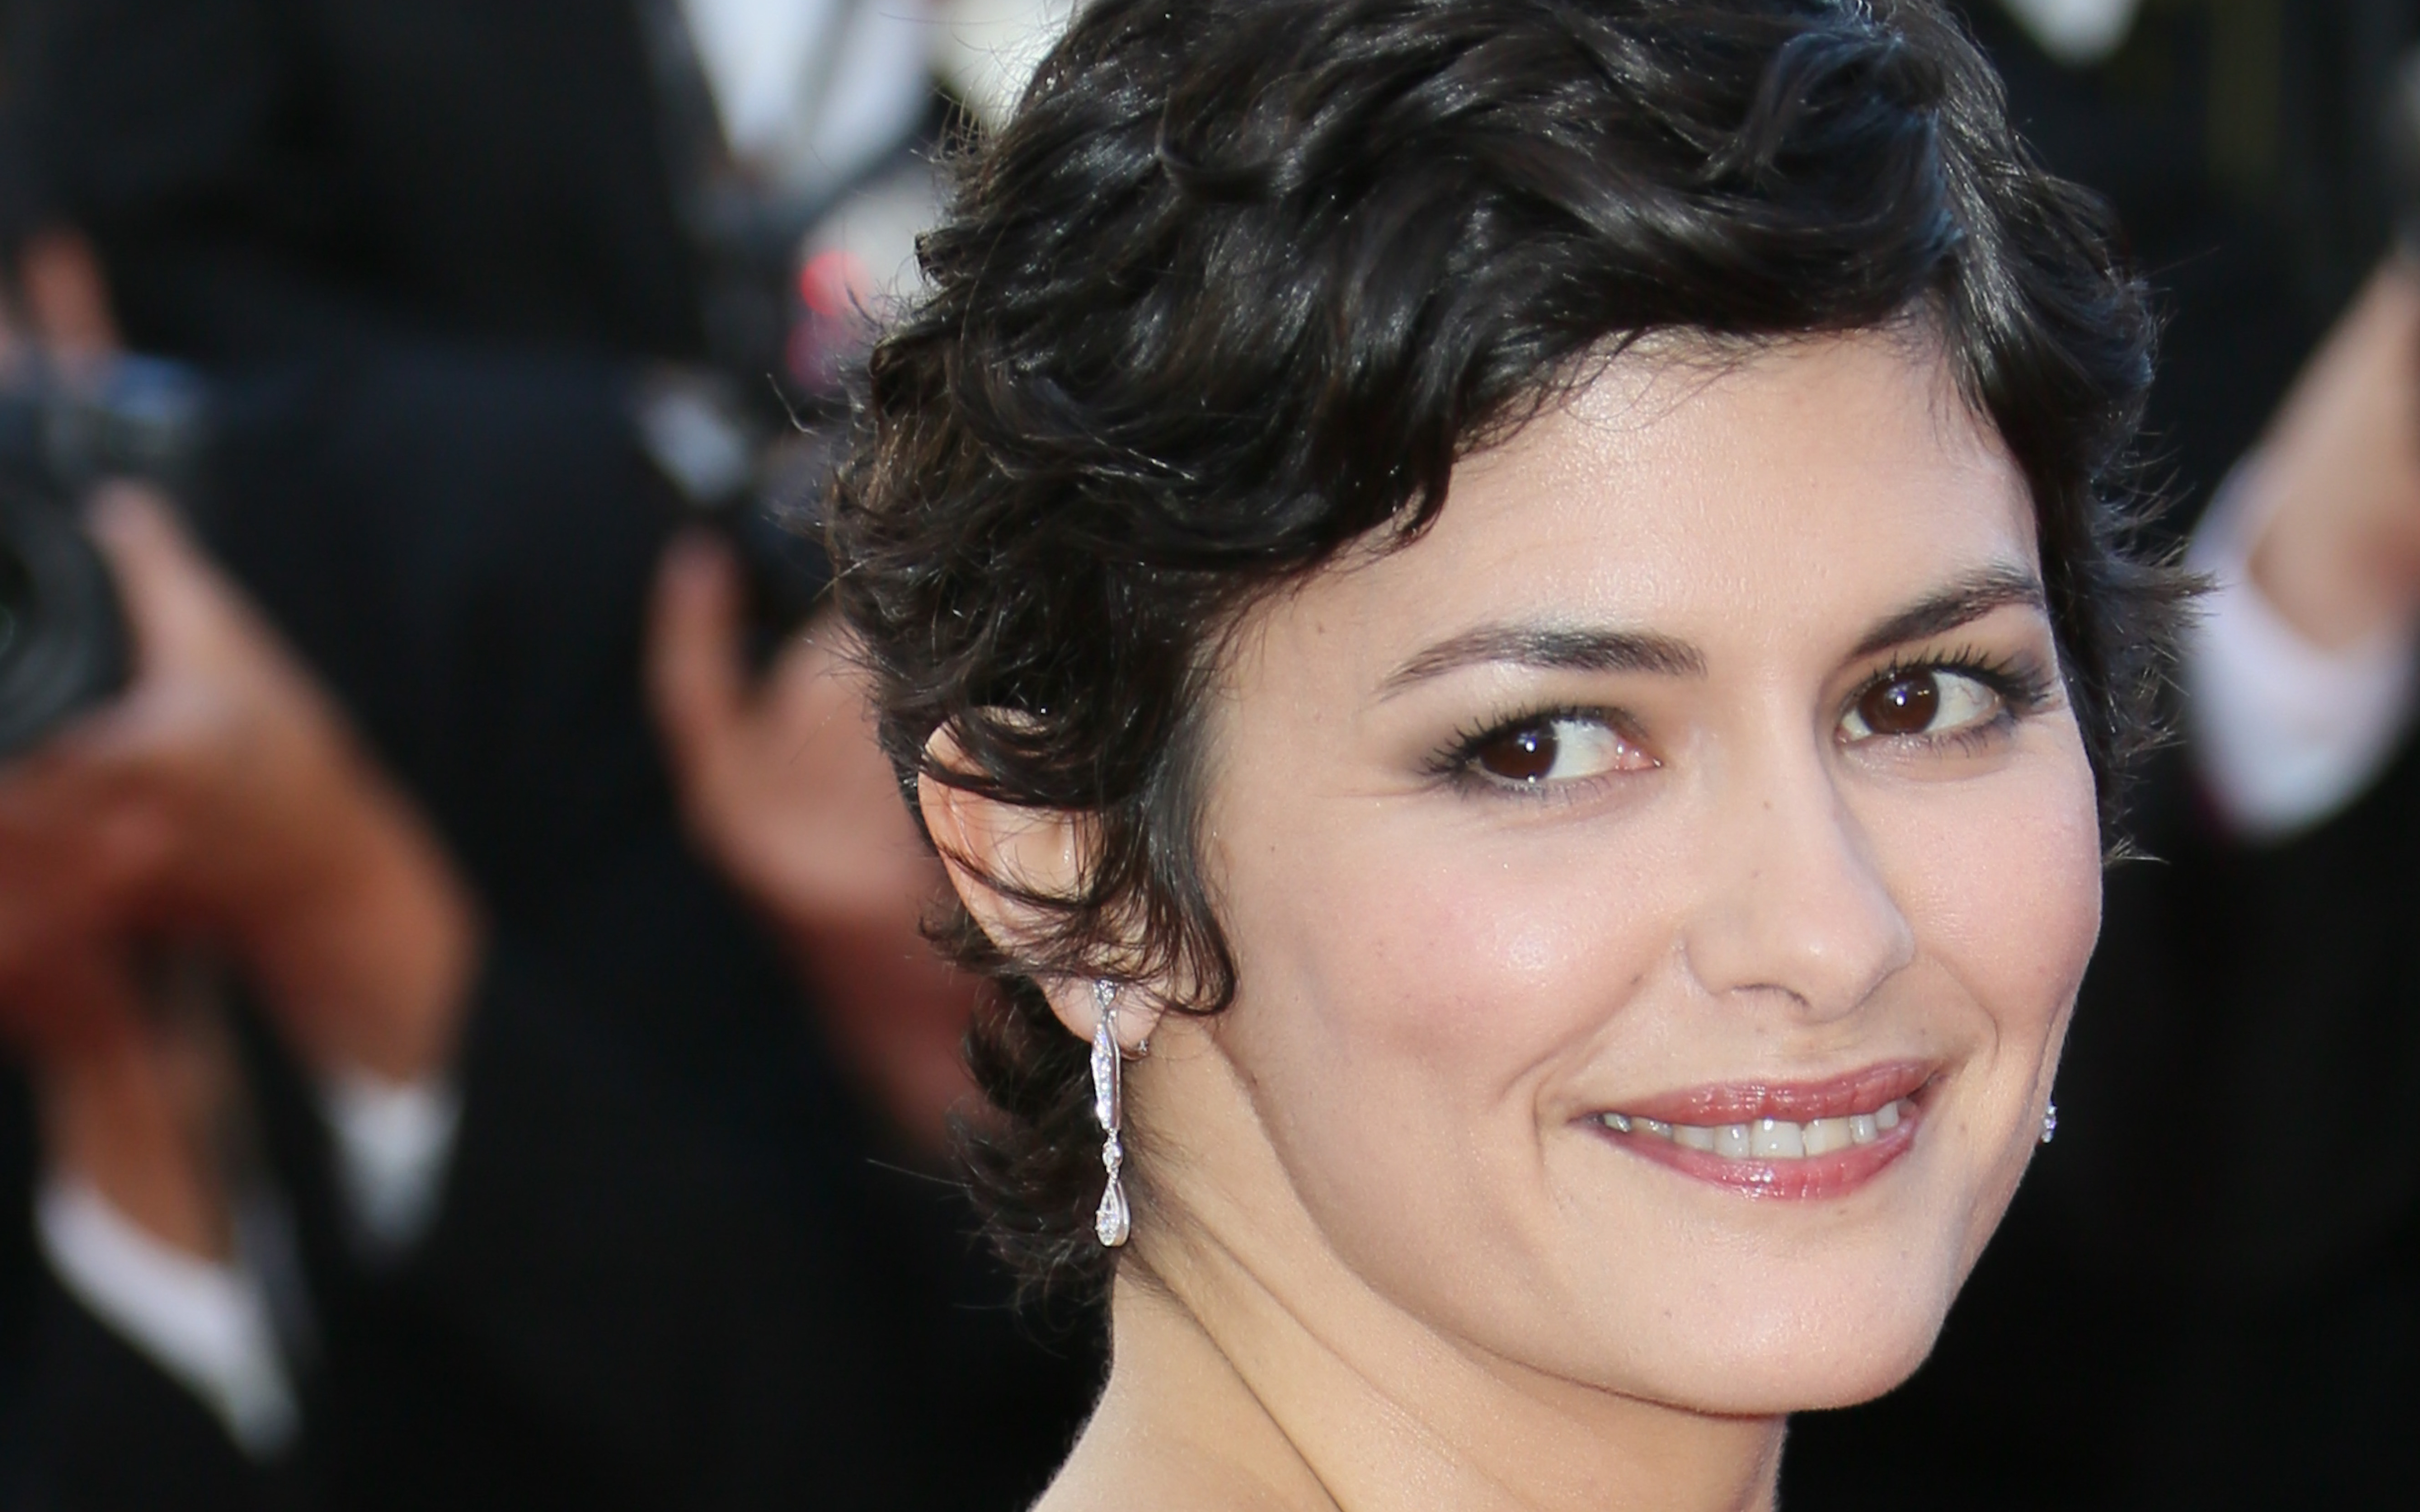 Audrey Tautou In Boy Cut Hair Style Hd Wallpaper Facebook Cover